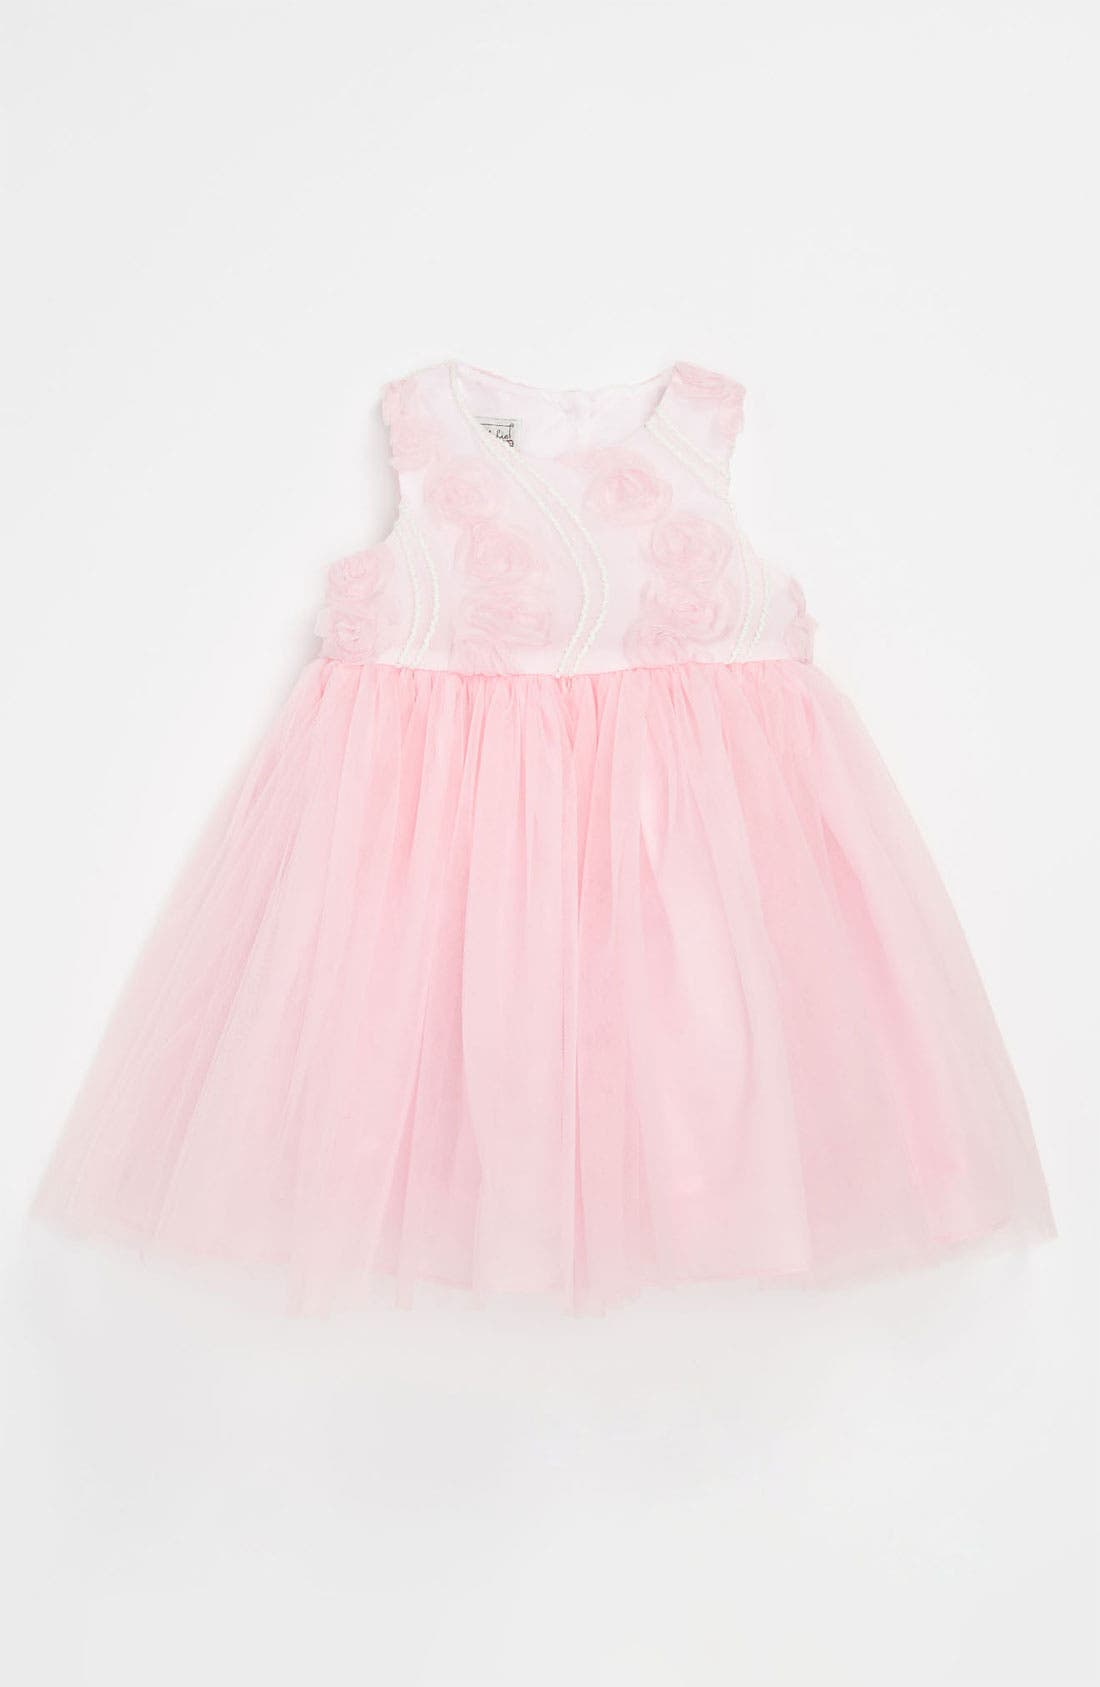 Main Image - Pippa & Julie Soutache Ballerina Dress (Toddler)